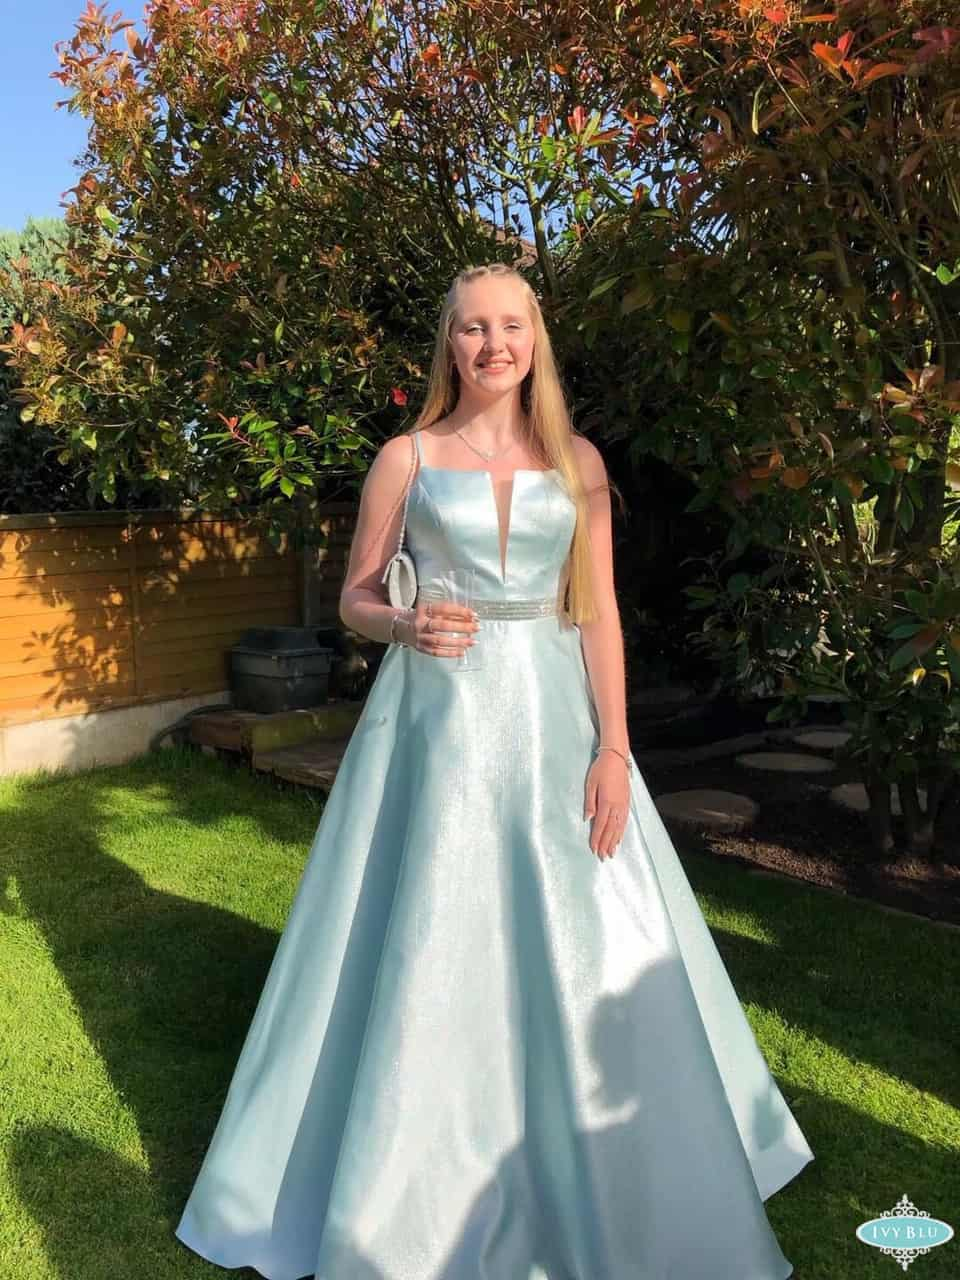 Prom Girl In Full Length Light Blue Dress